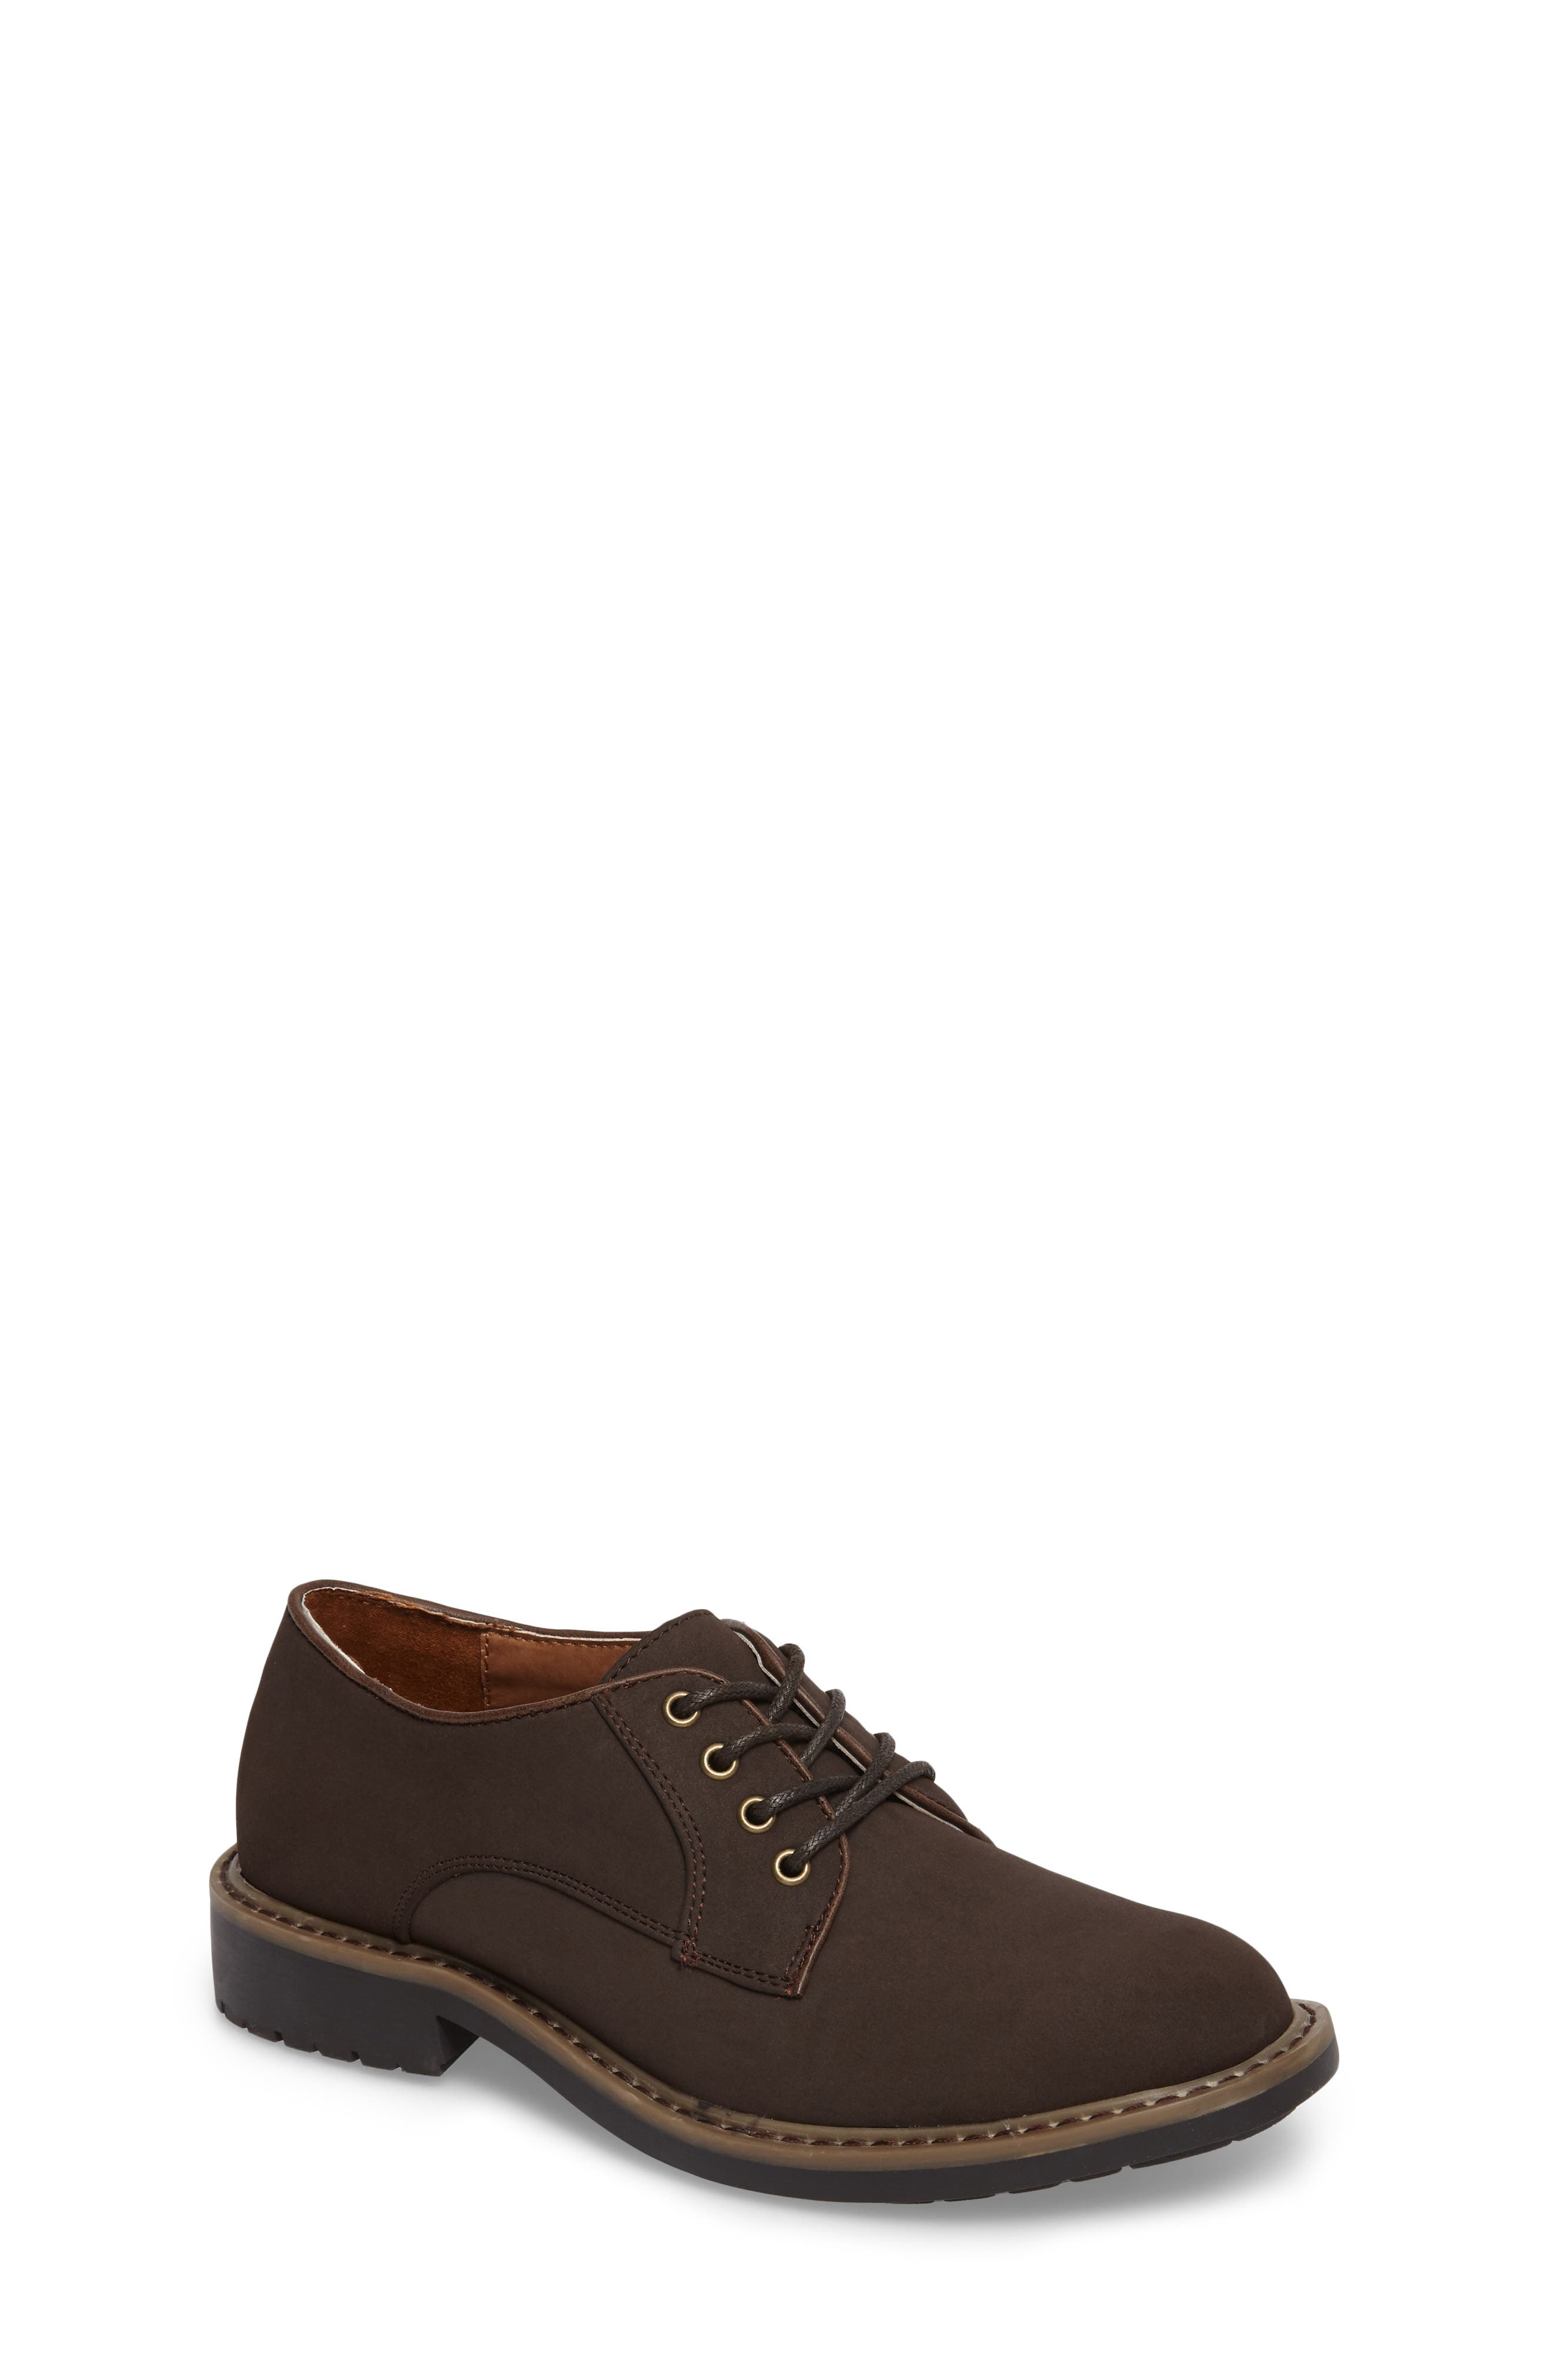 Kenneth Cole New York Take Buck Oxford,                         Main,                         color, 233